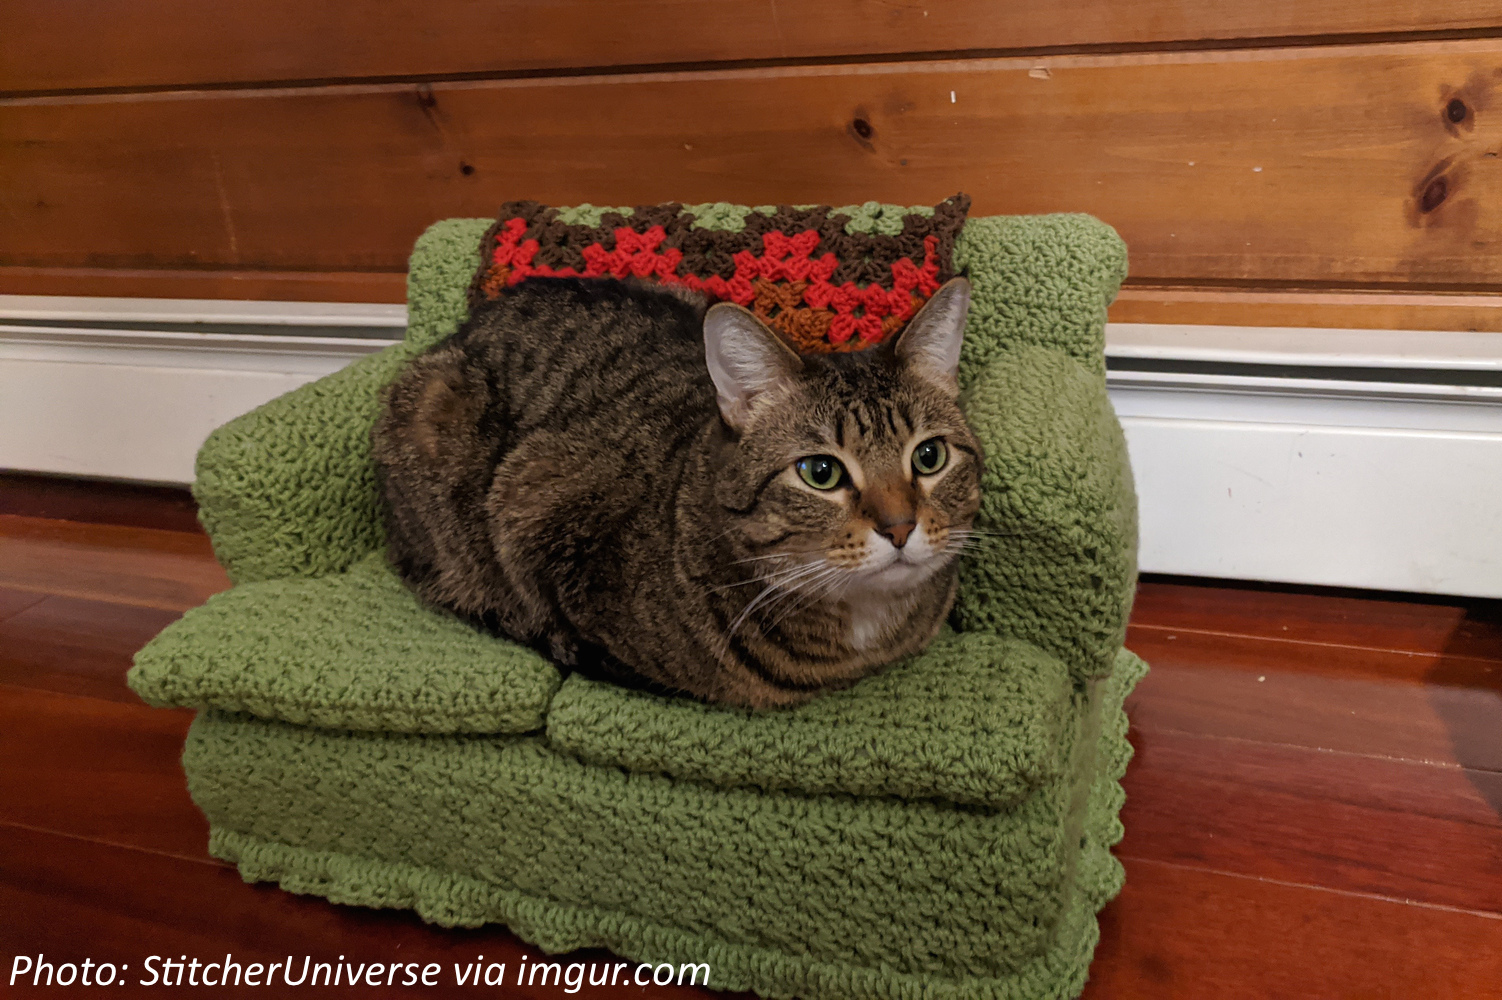 The Purr-fect Seat